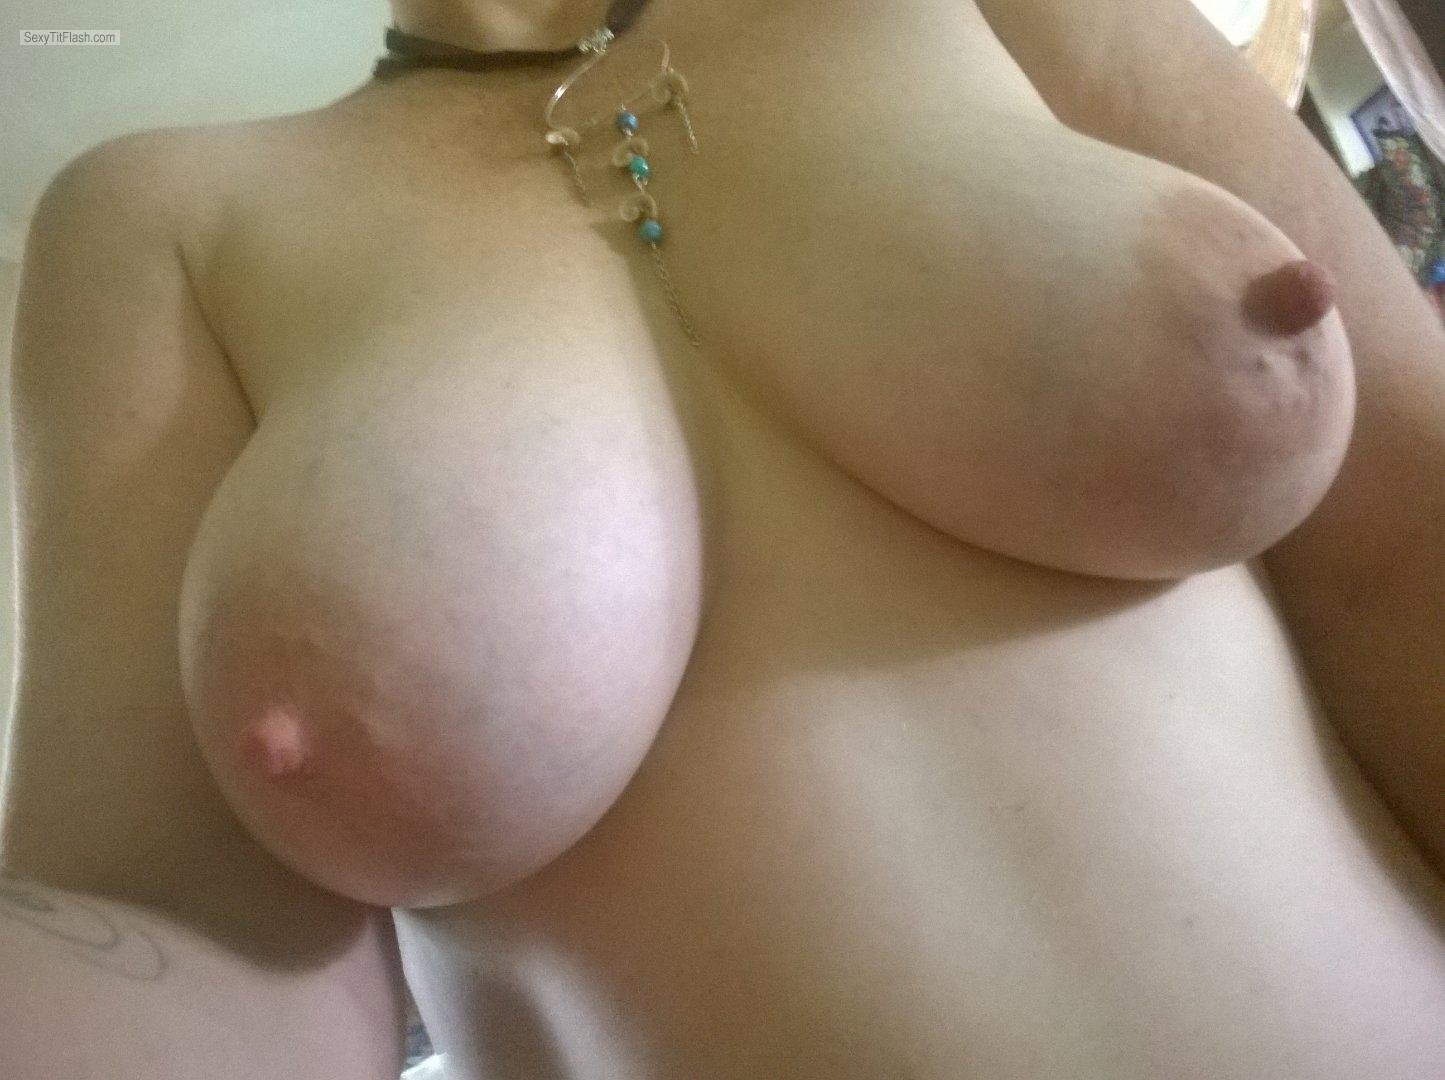 Tit Flash: My Big Tits - Cutebum from Australia